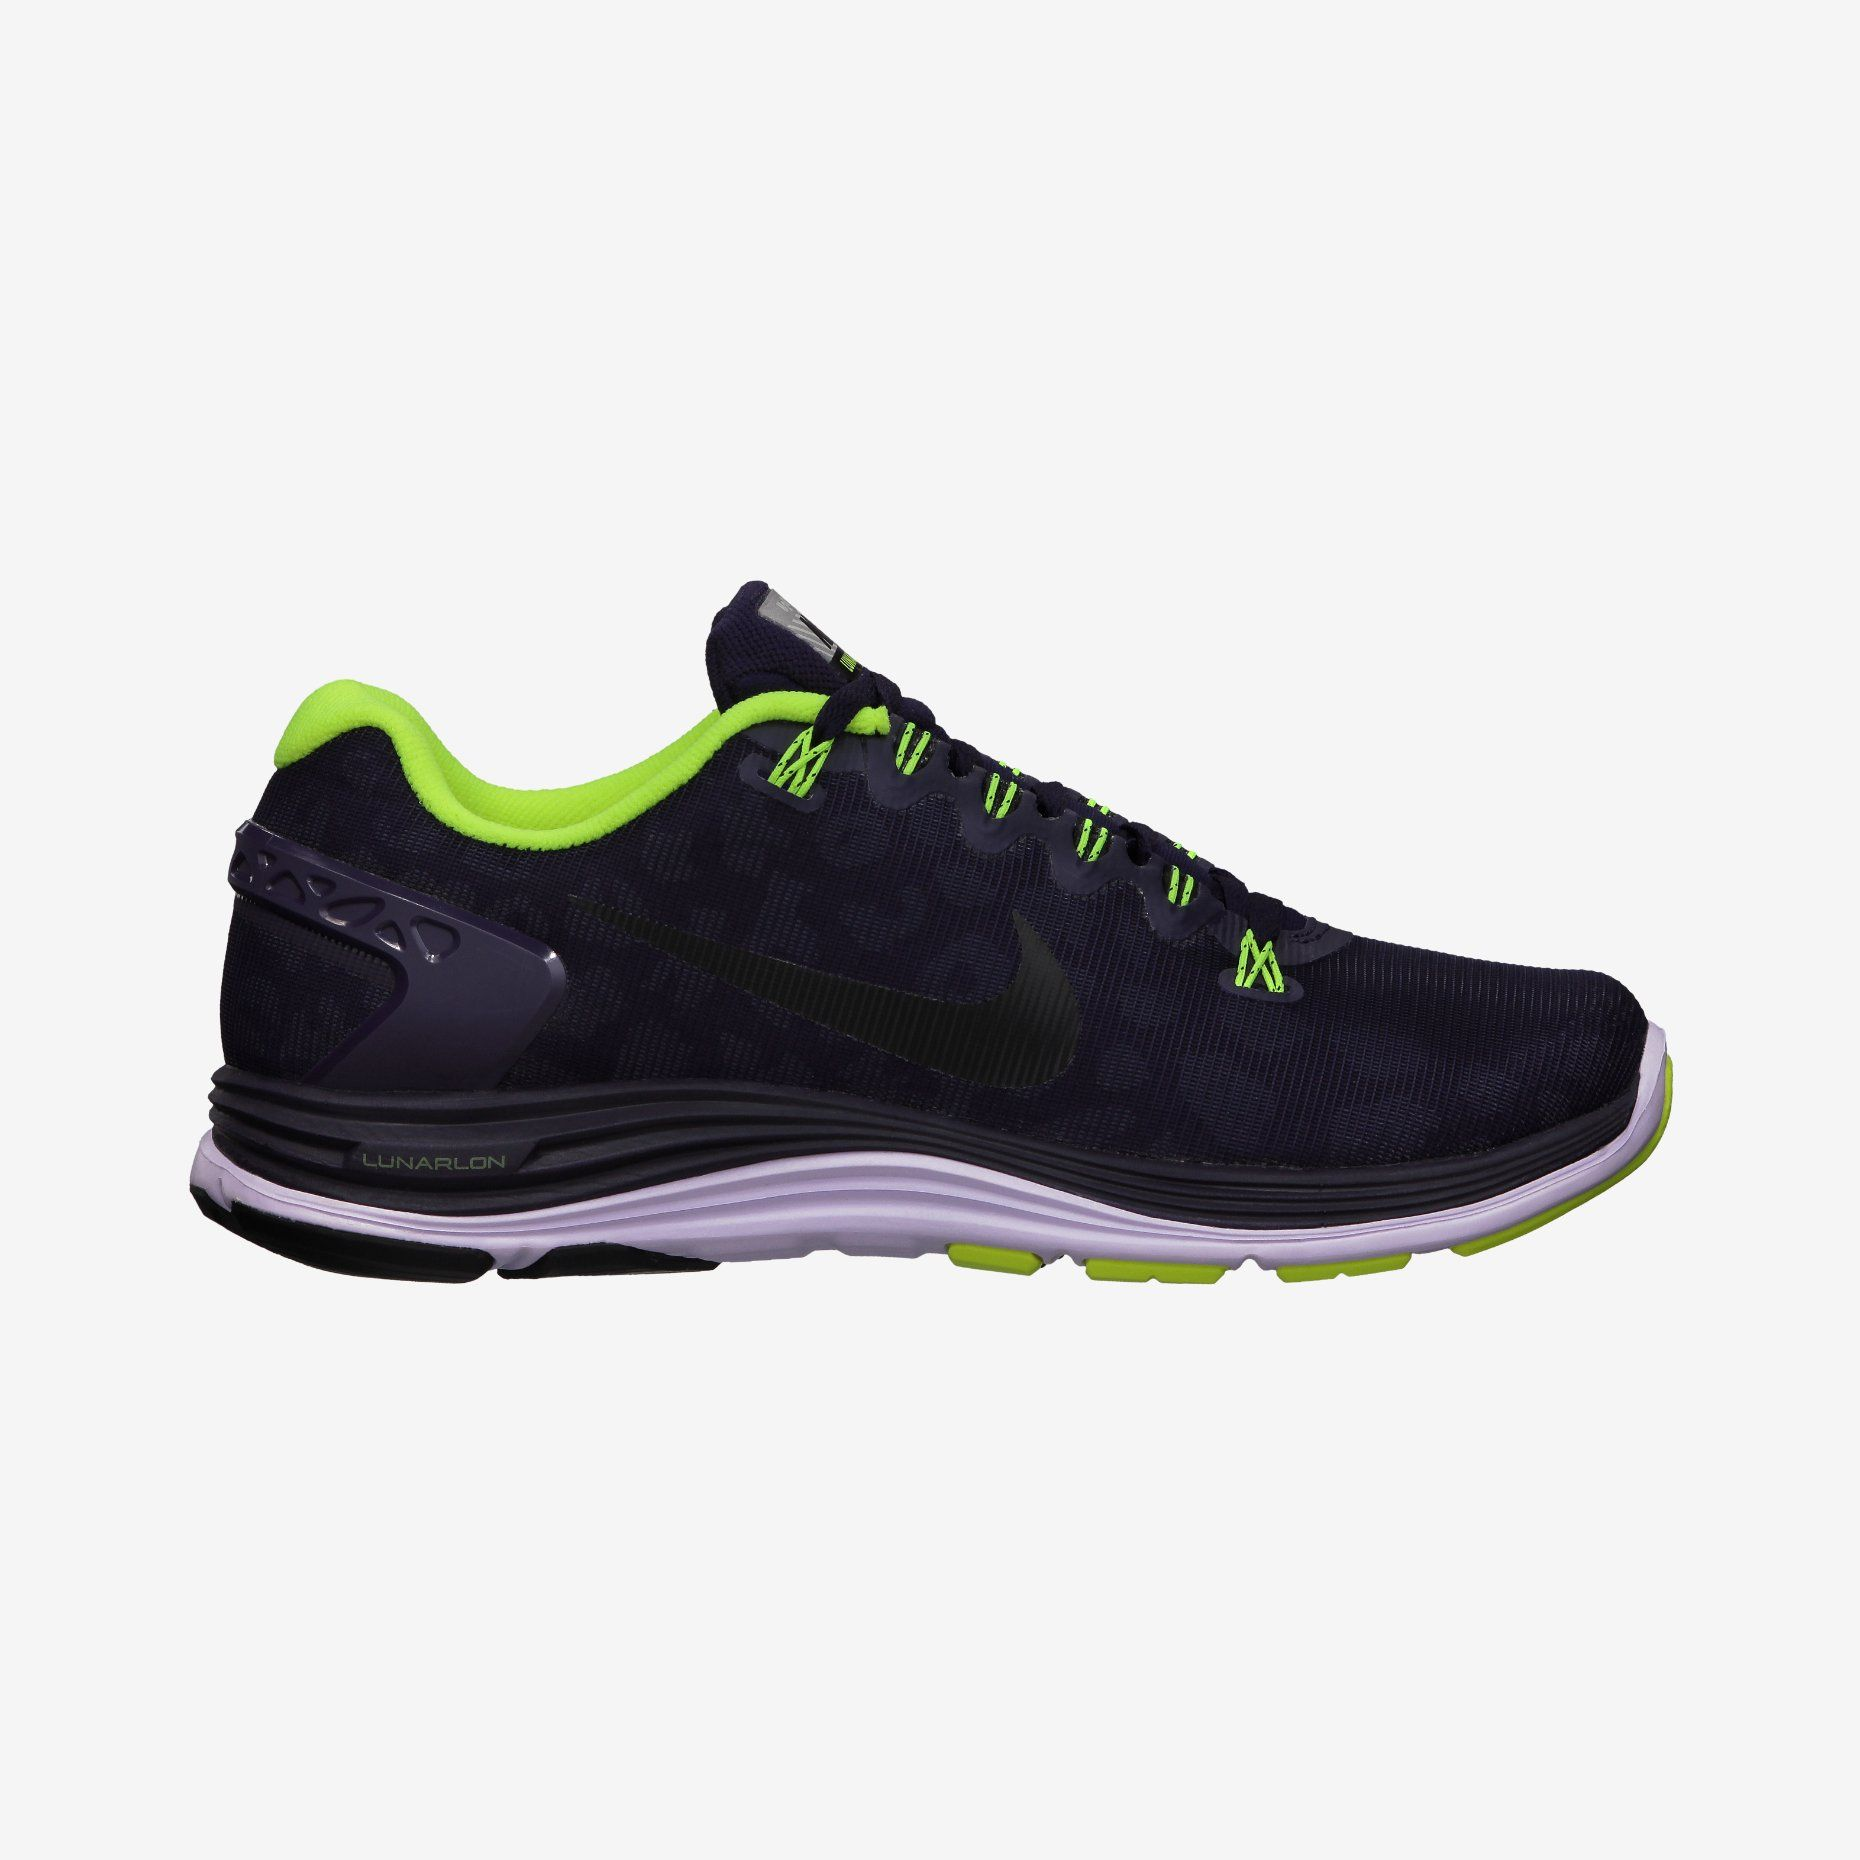 Nike LunarGlide 5 Shield | Shoes | Nike lunarglide, Sneakers